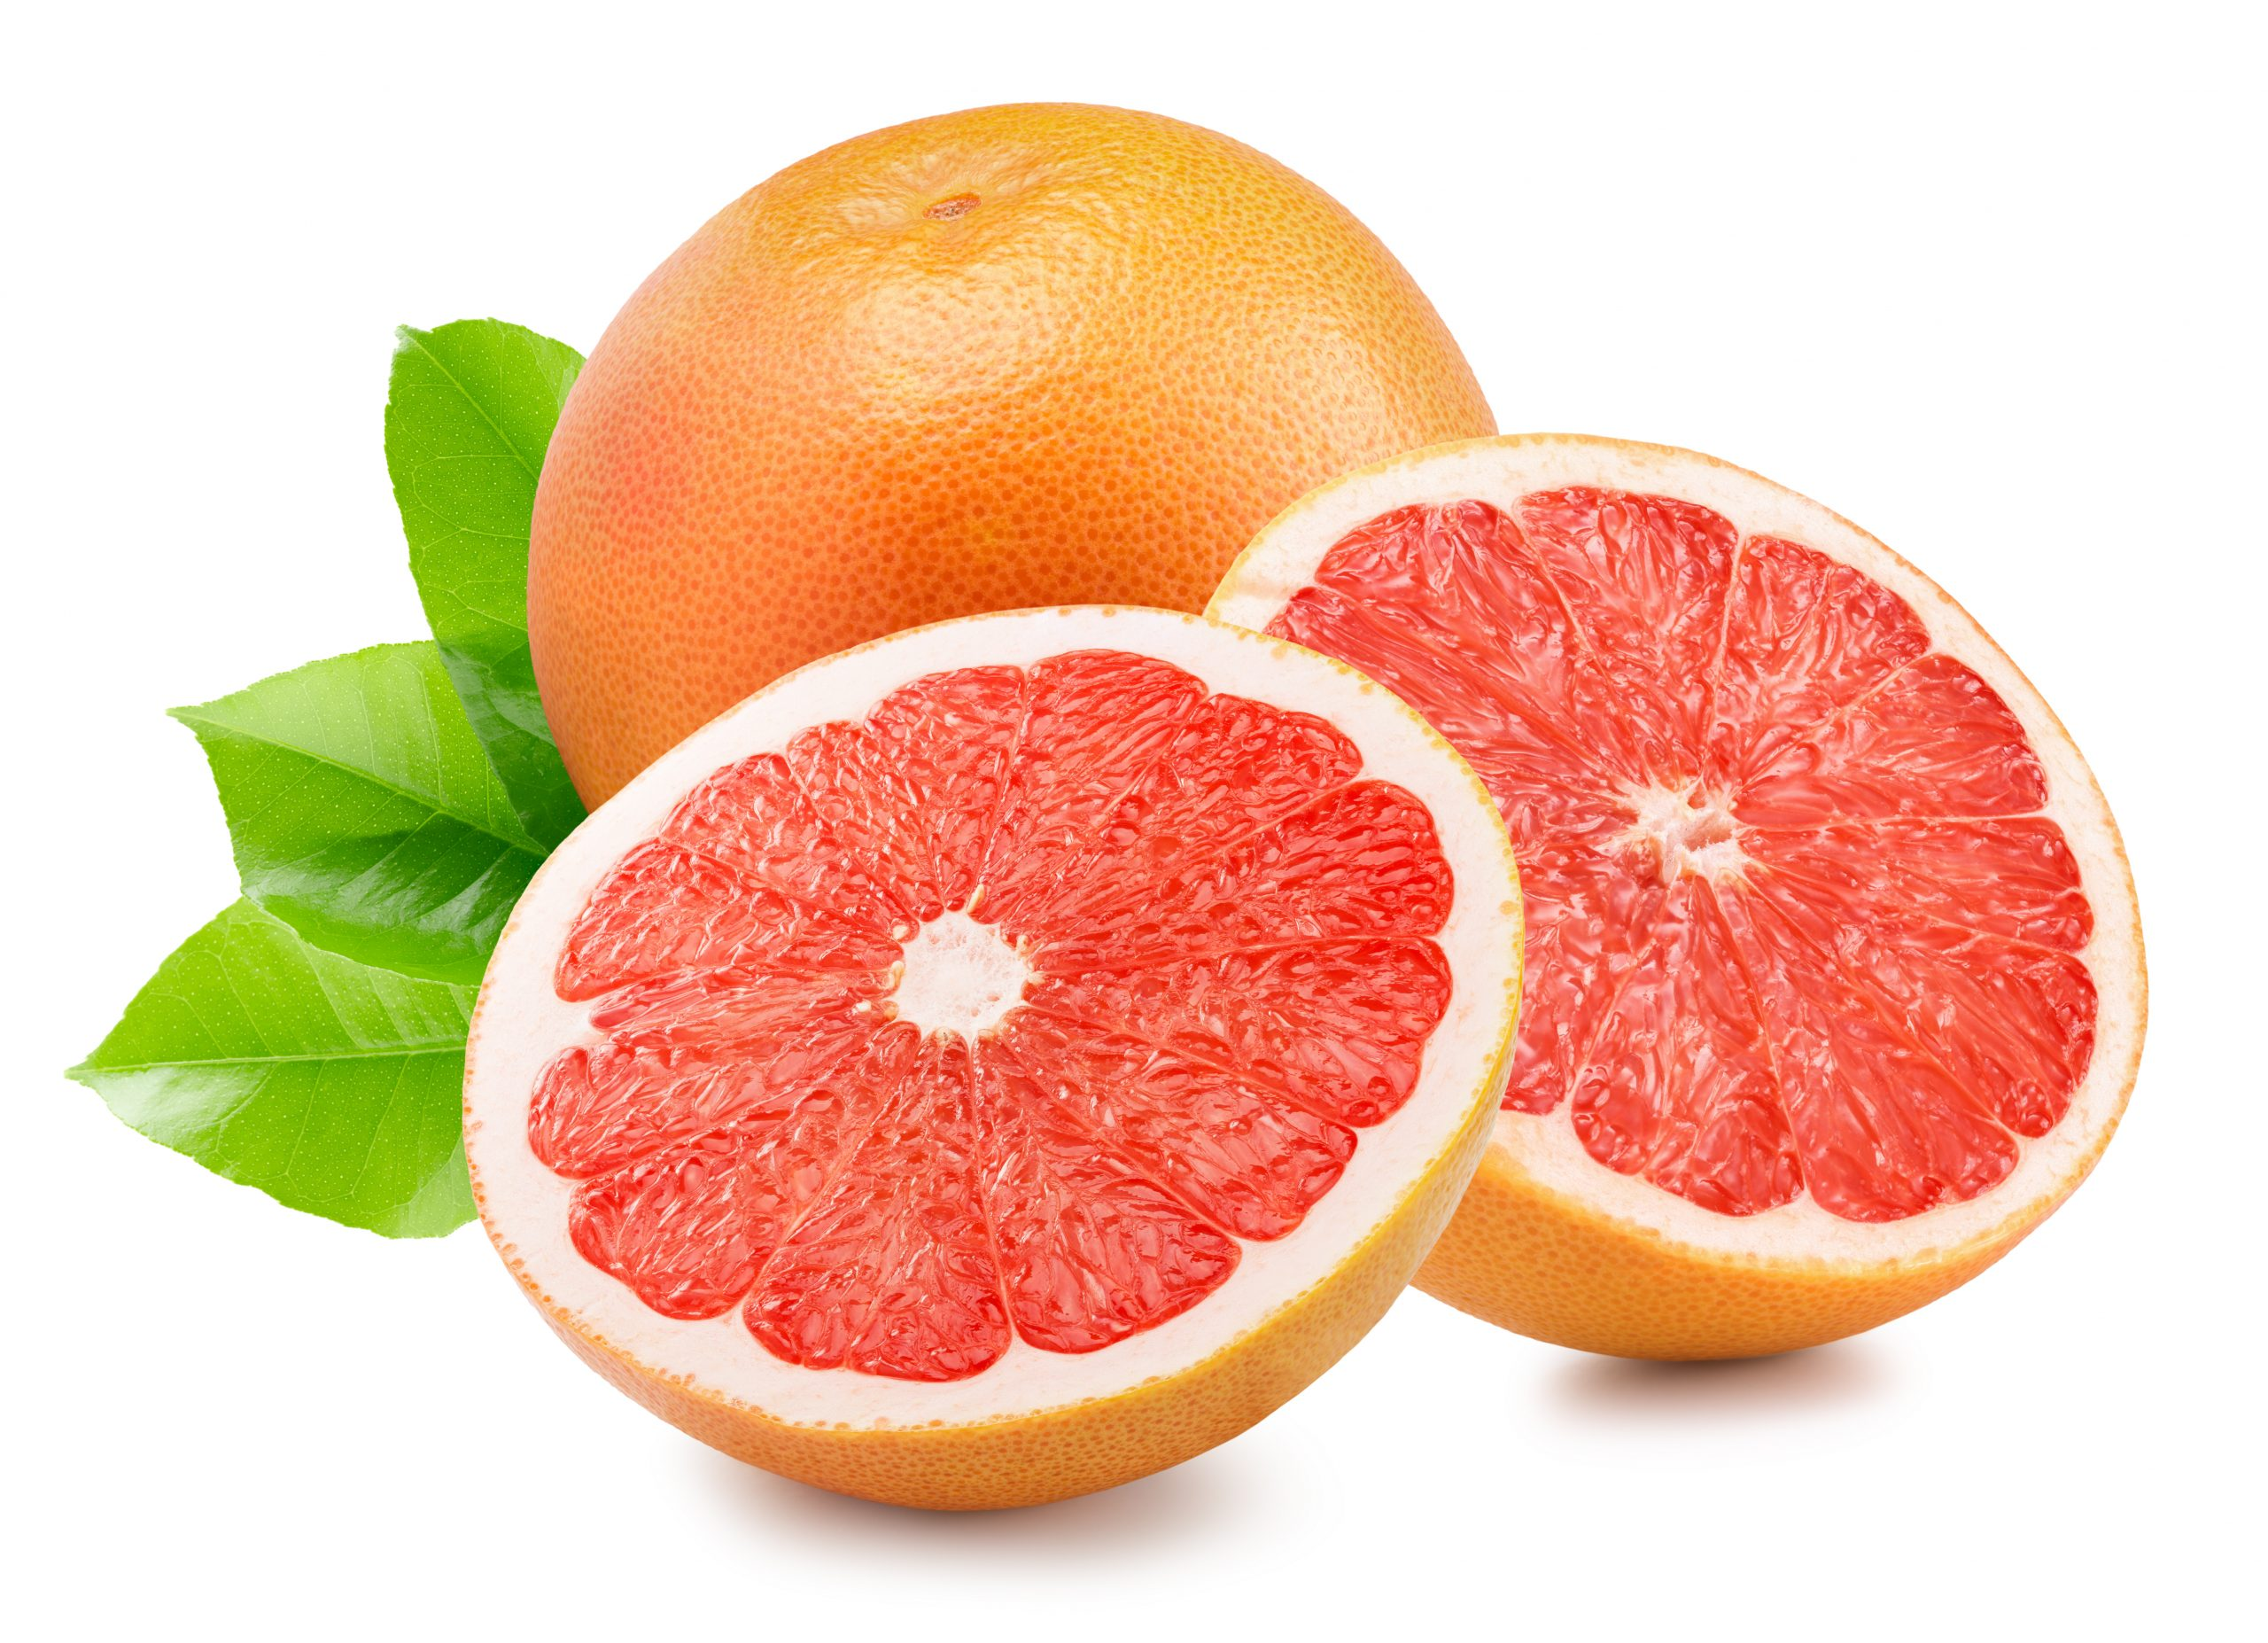 All Grapefruit Are Not Created Equal